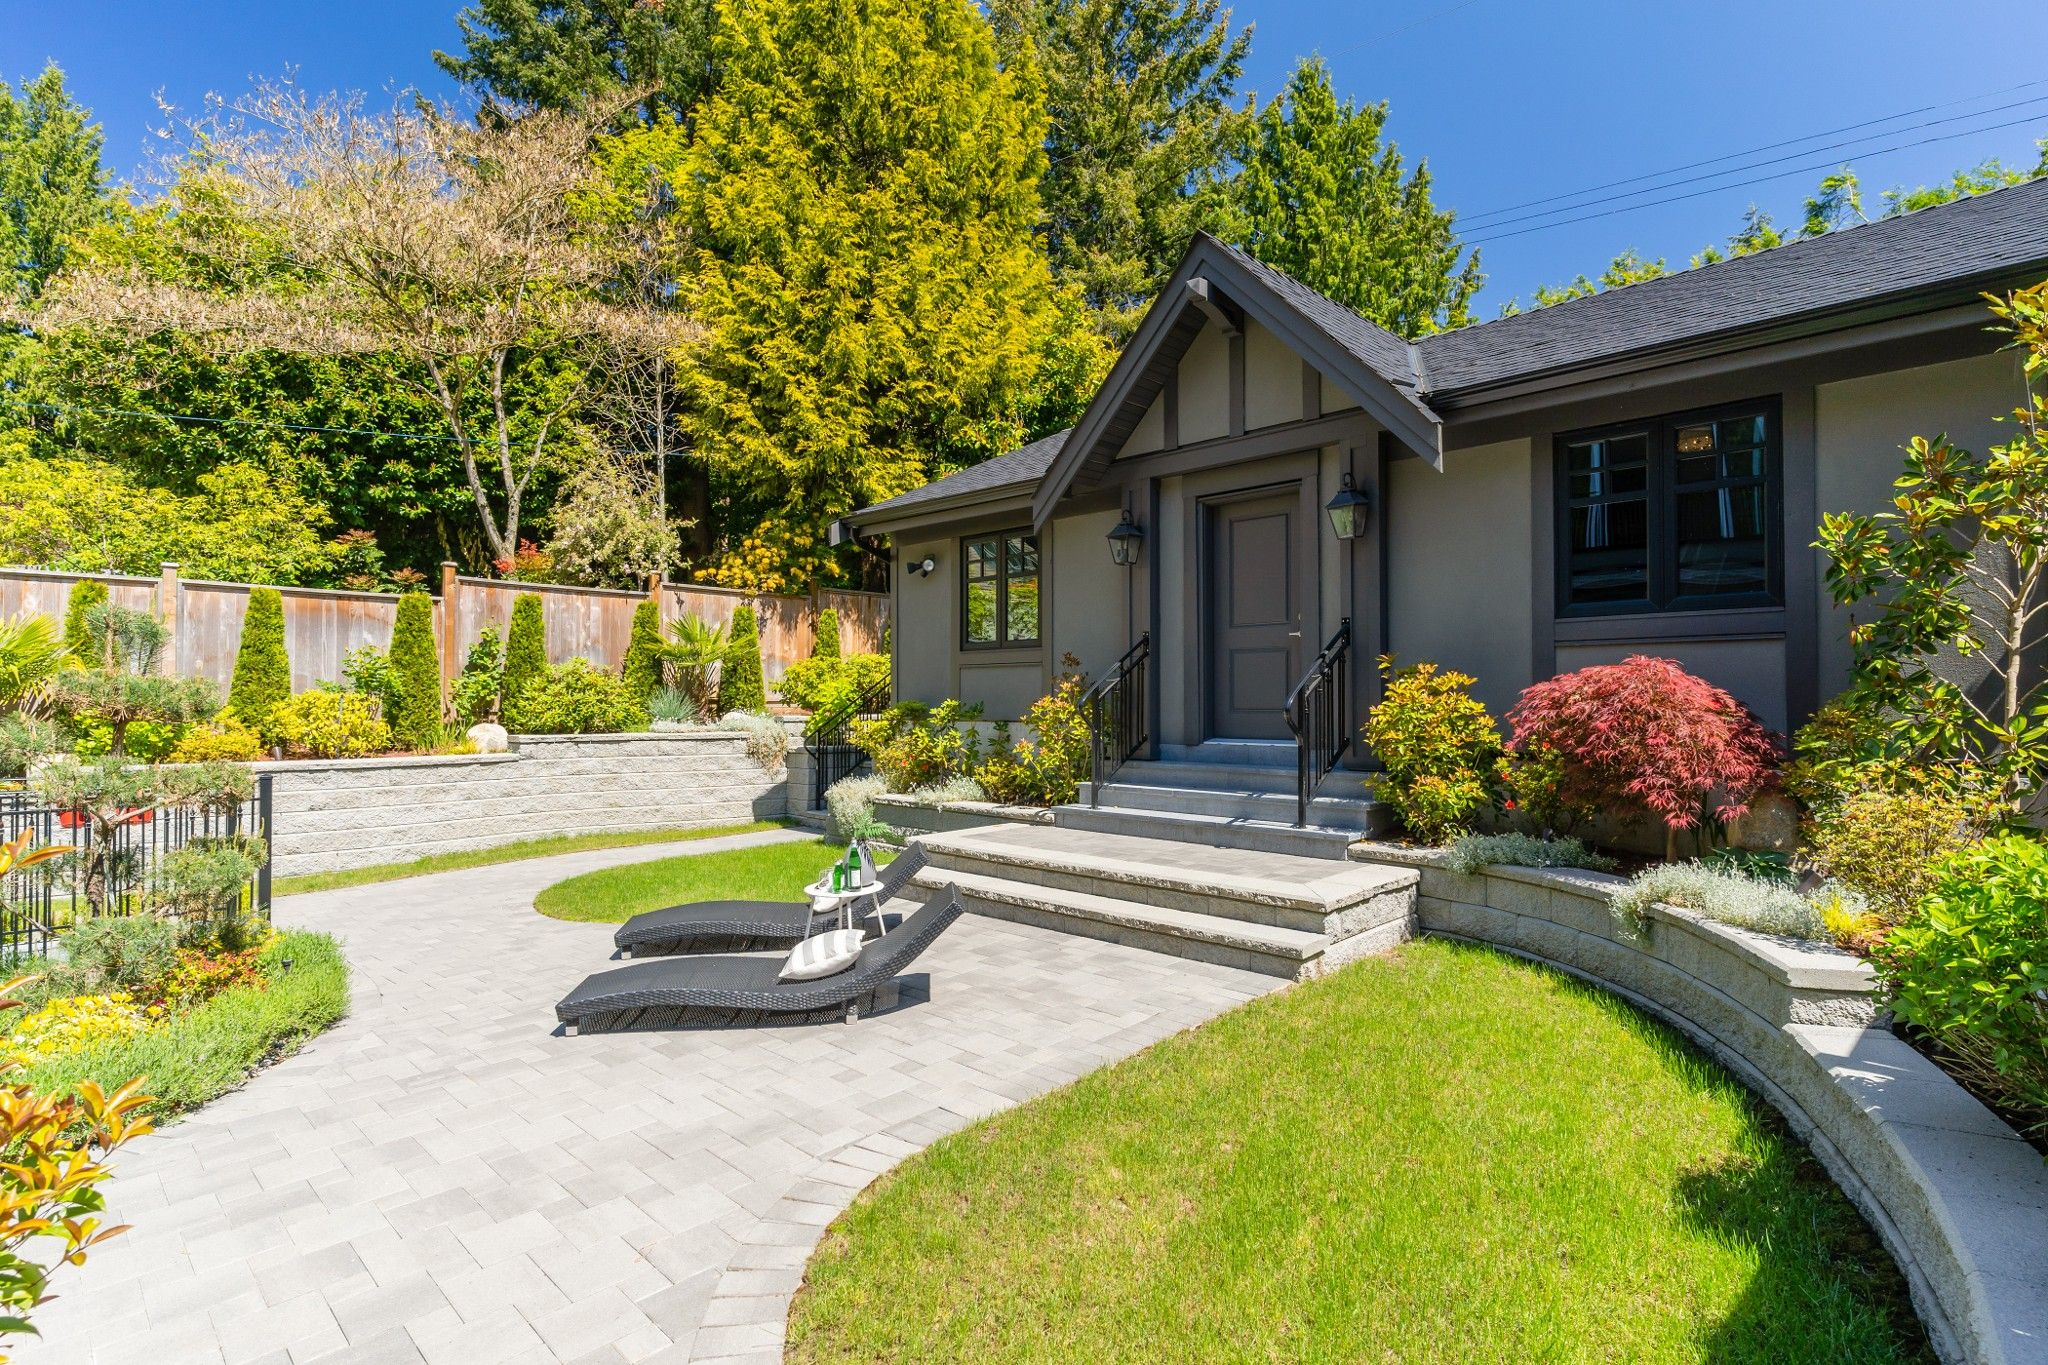 Photo 43: Photos: 5756 ALMA STREET in VANCOUVER: Southlands House for sale (Vancouver West)  : MLS®# R2588229